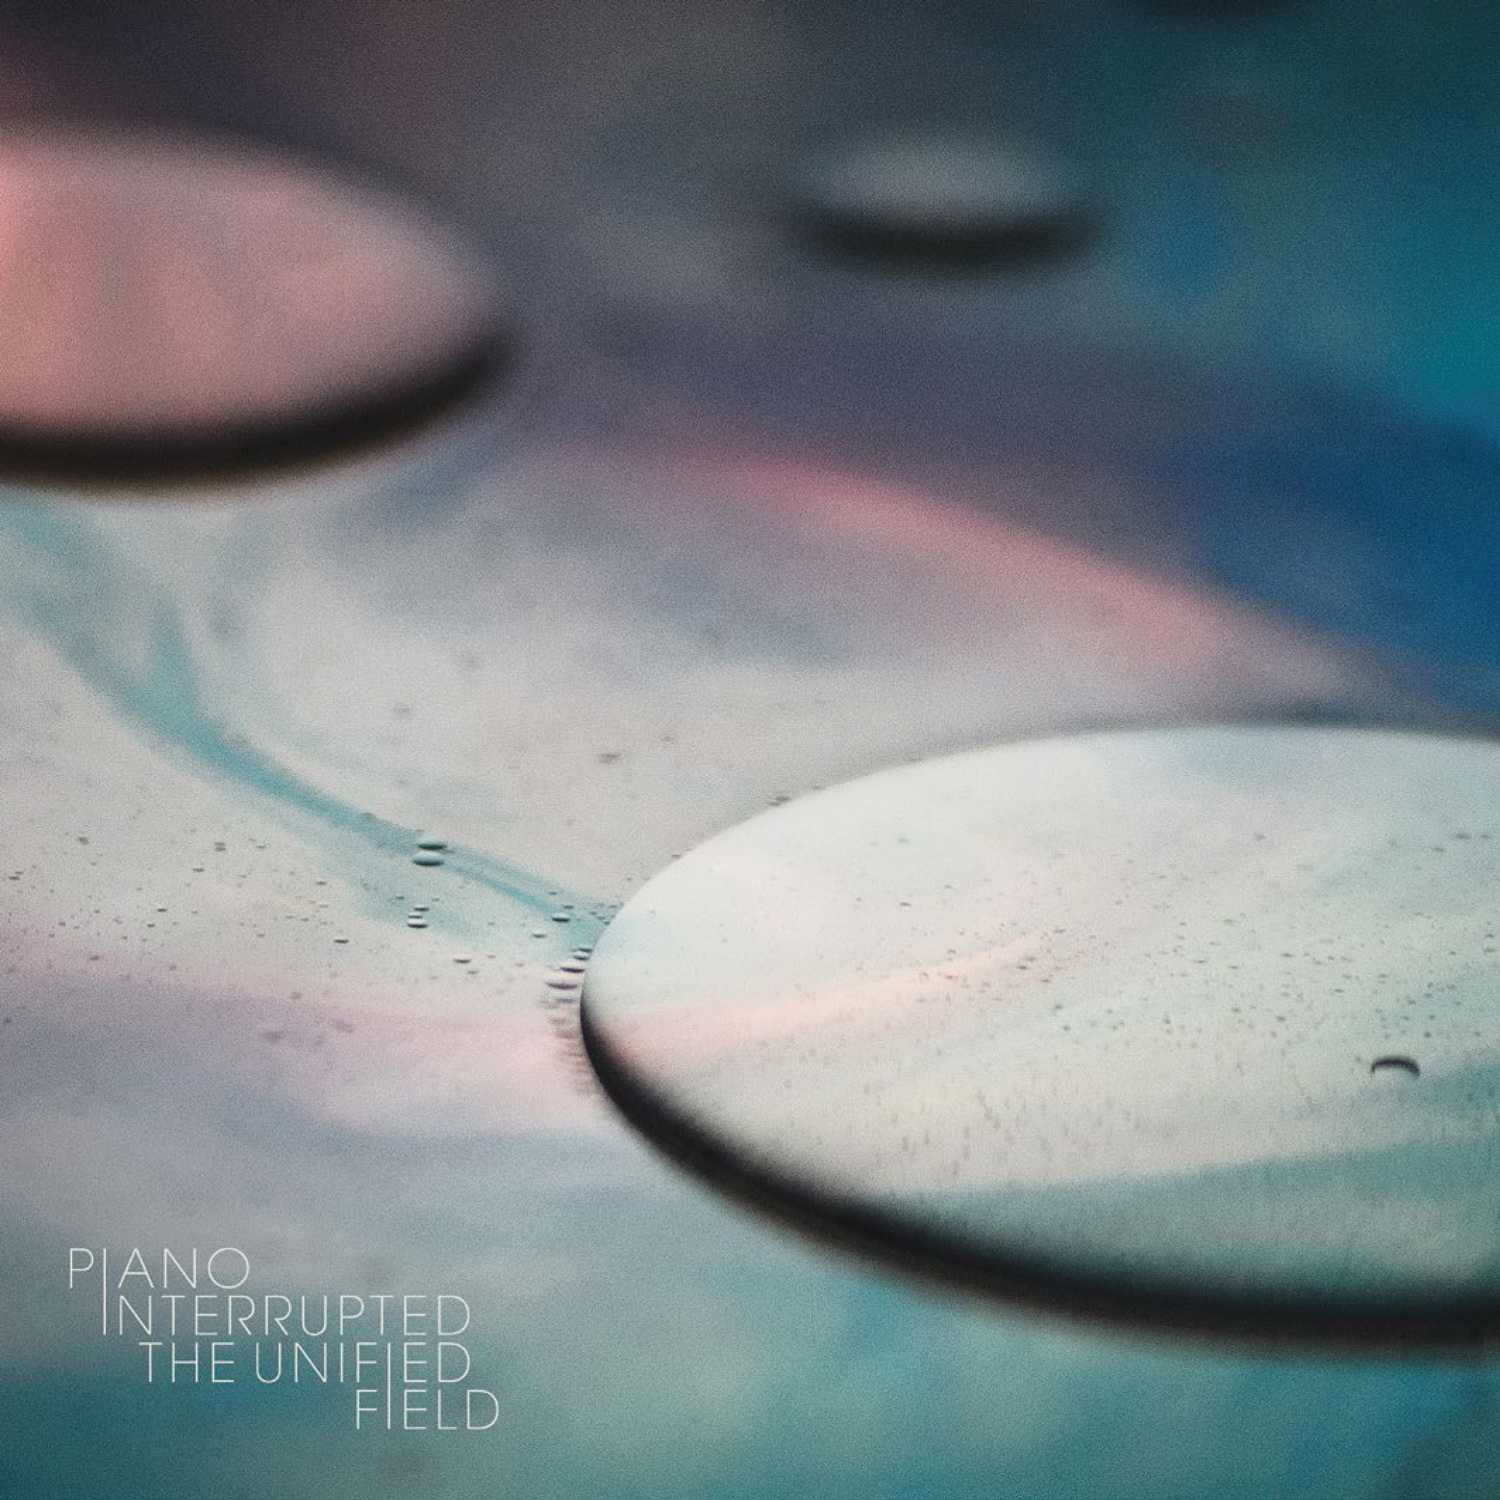 Piano Interrupted - The Unified field